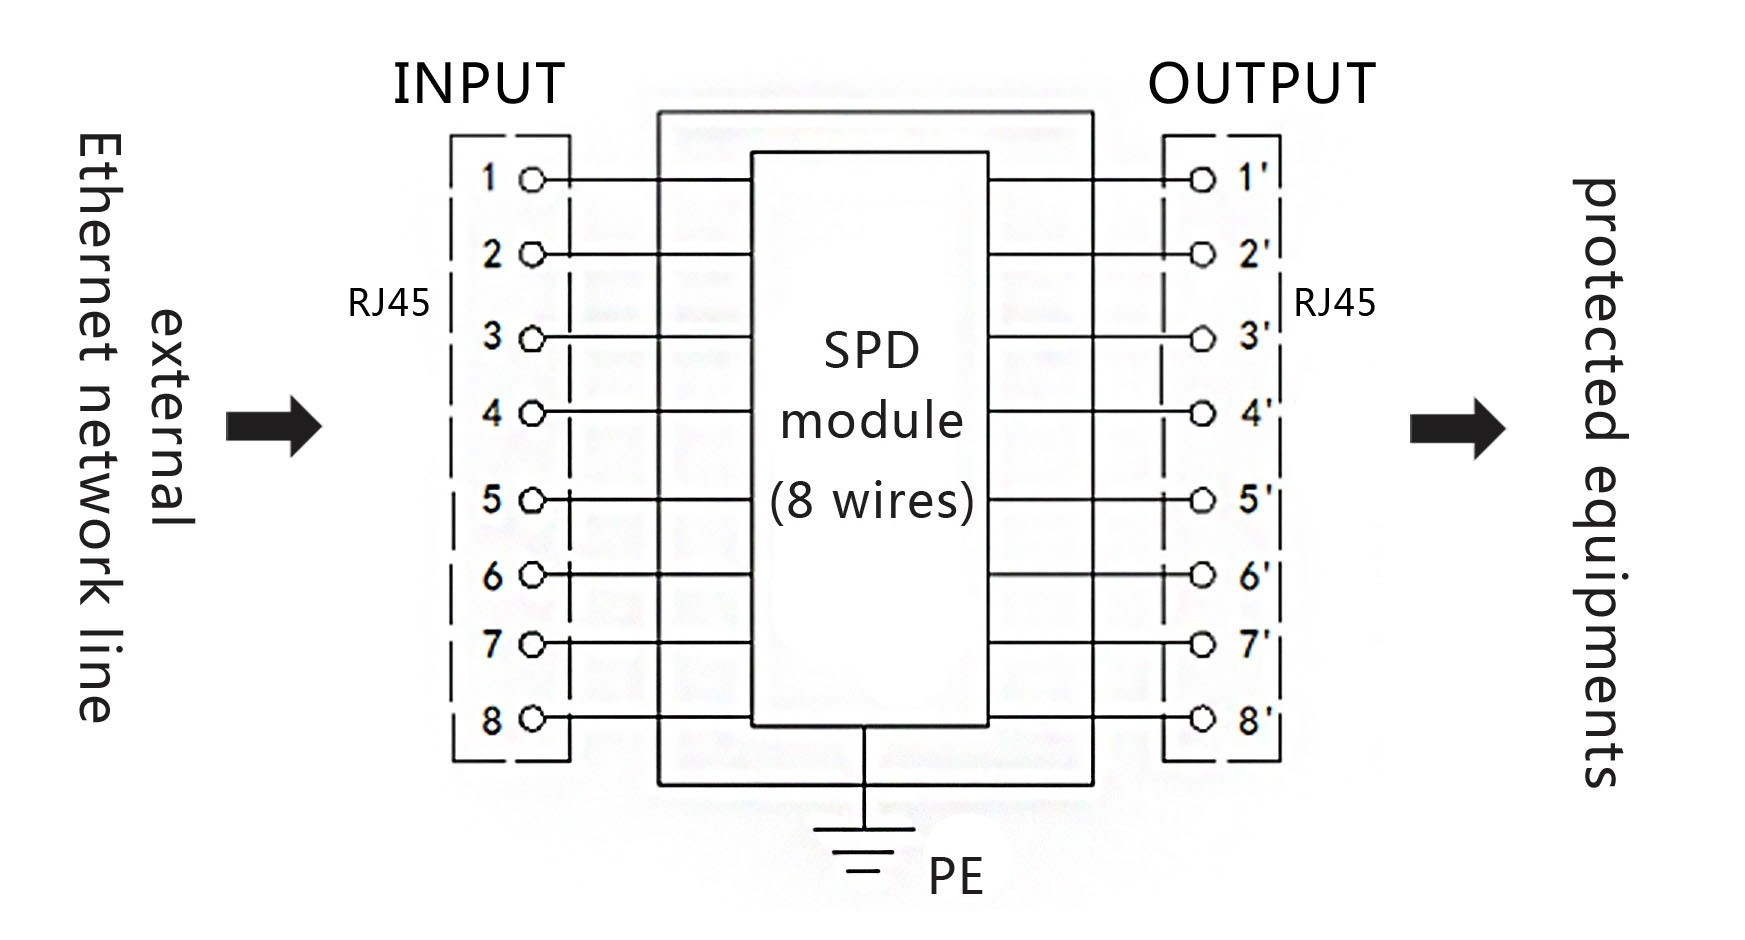 Ethernet Wiring Diagram Poe